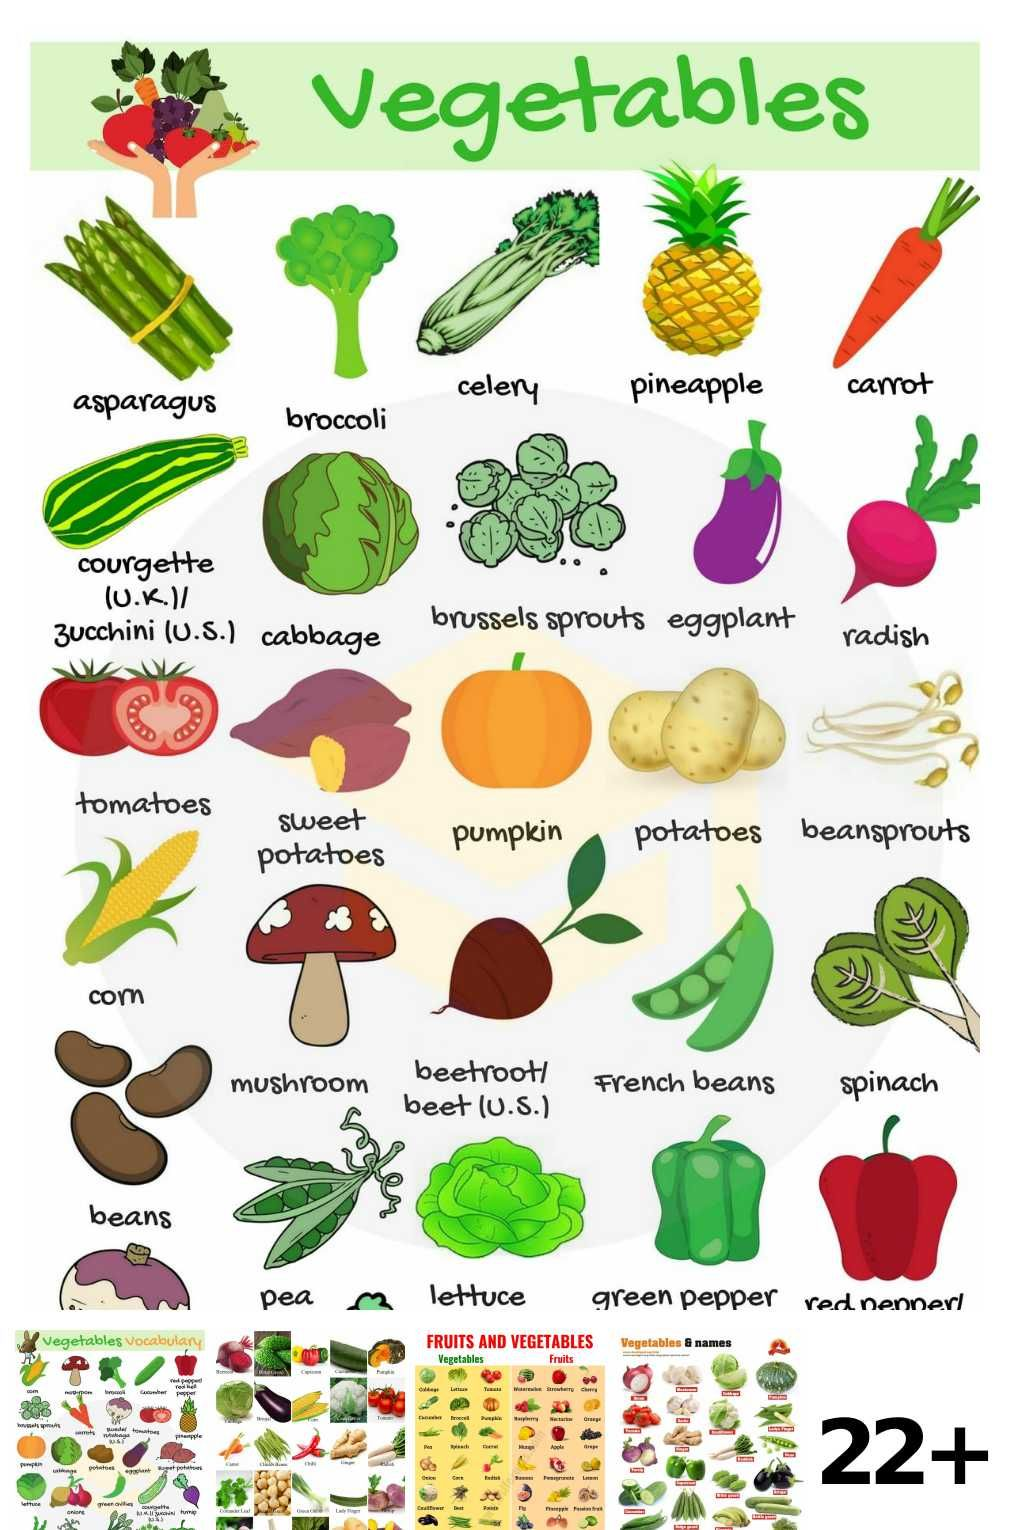 22 Vegetables Names In English Ideas Math Activities For Kids Human Body Activities Science Projects For Kids [ 1530 x 1030 Pixel ]